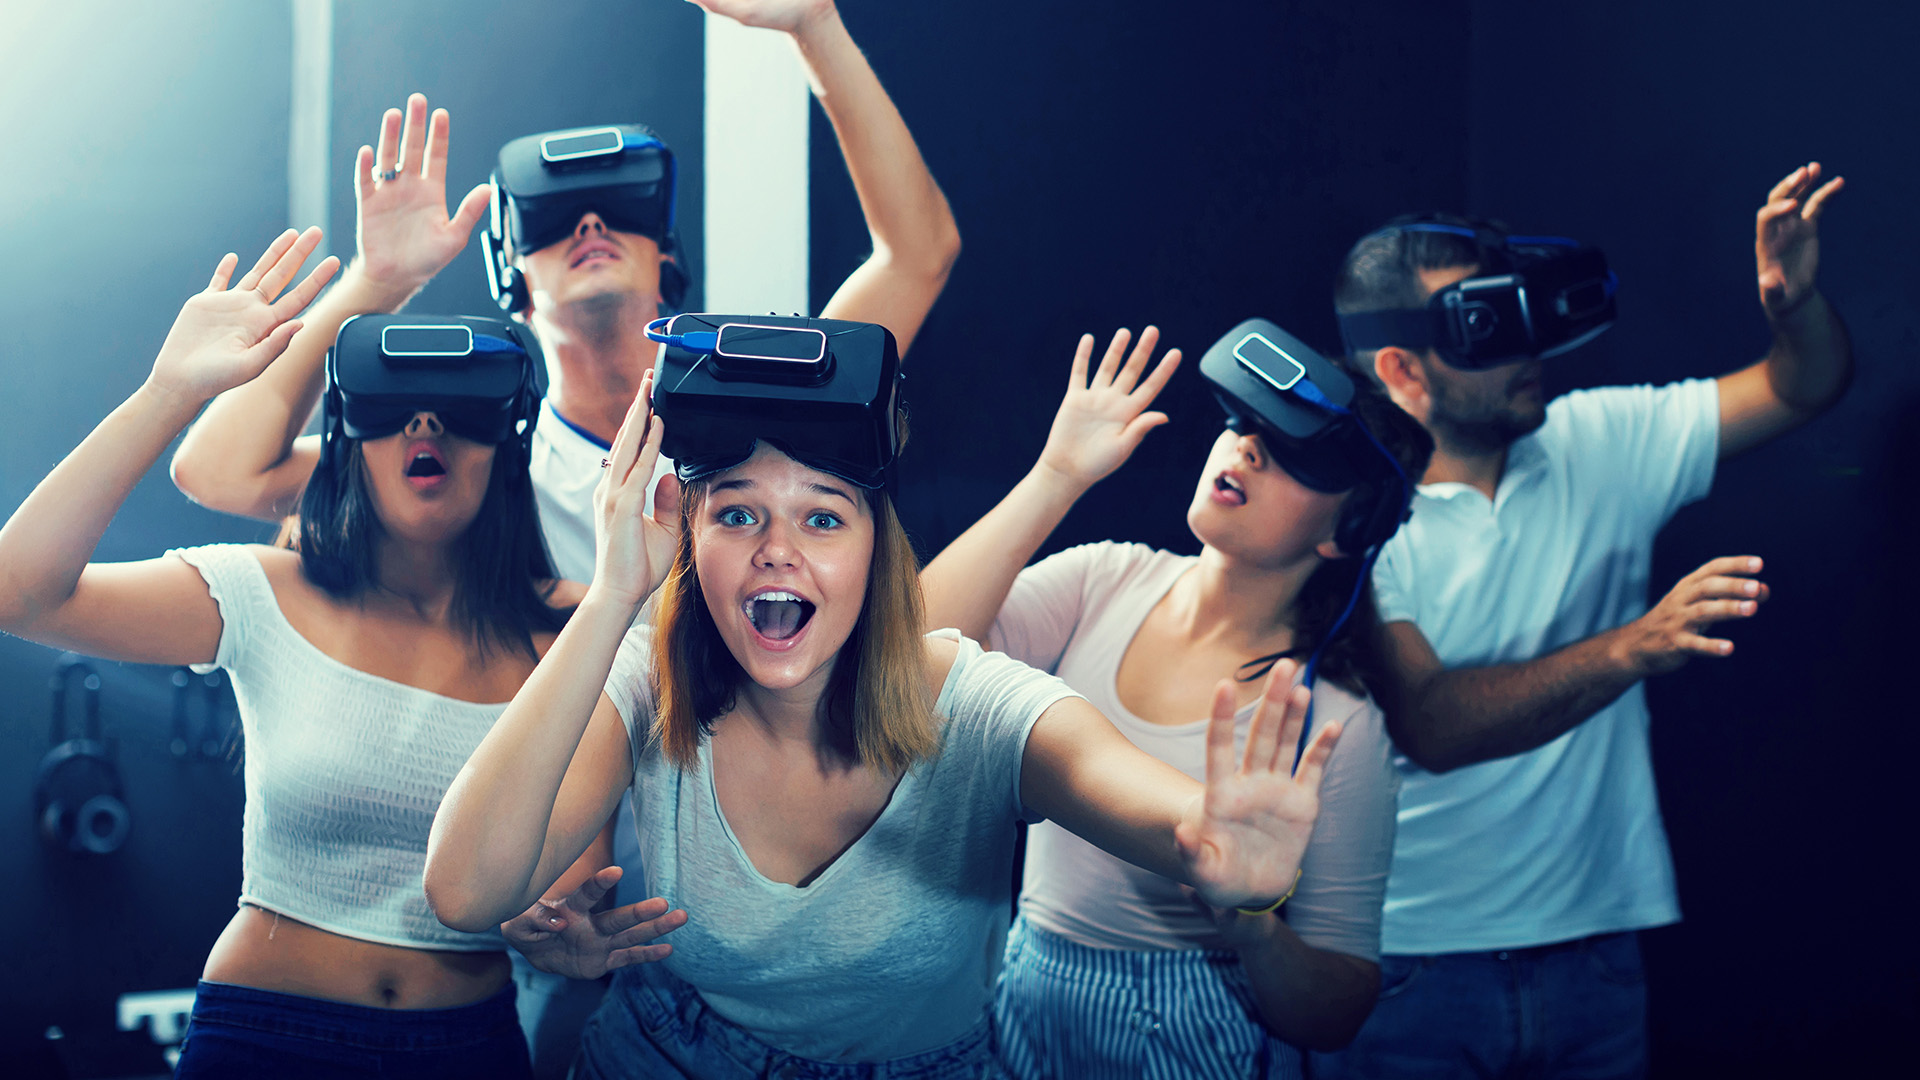 Young american scared girl on virtual reality attraction sitting with another people